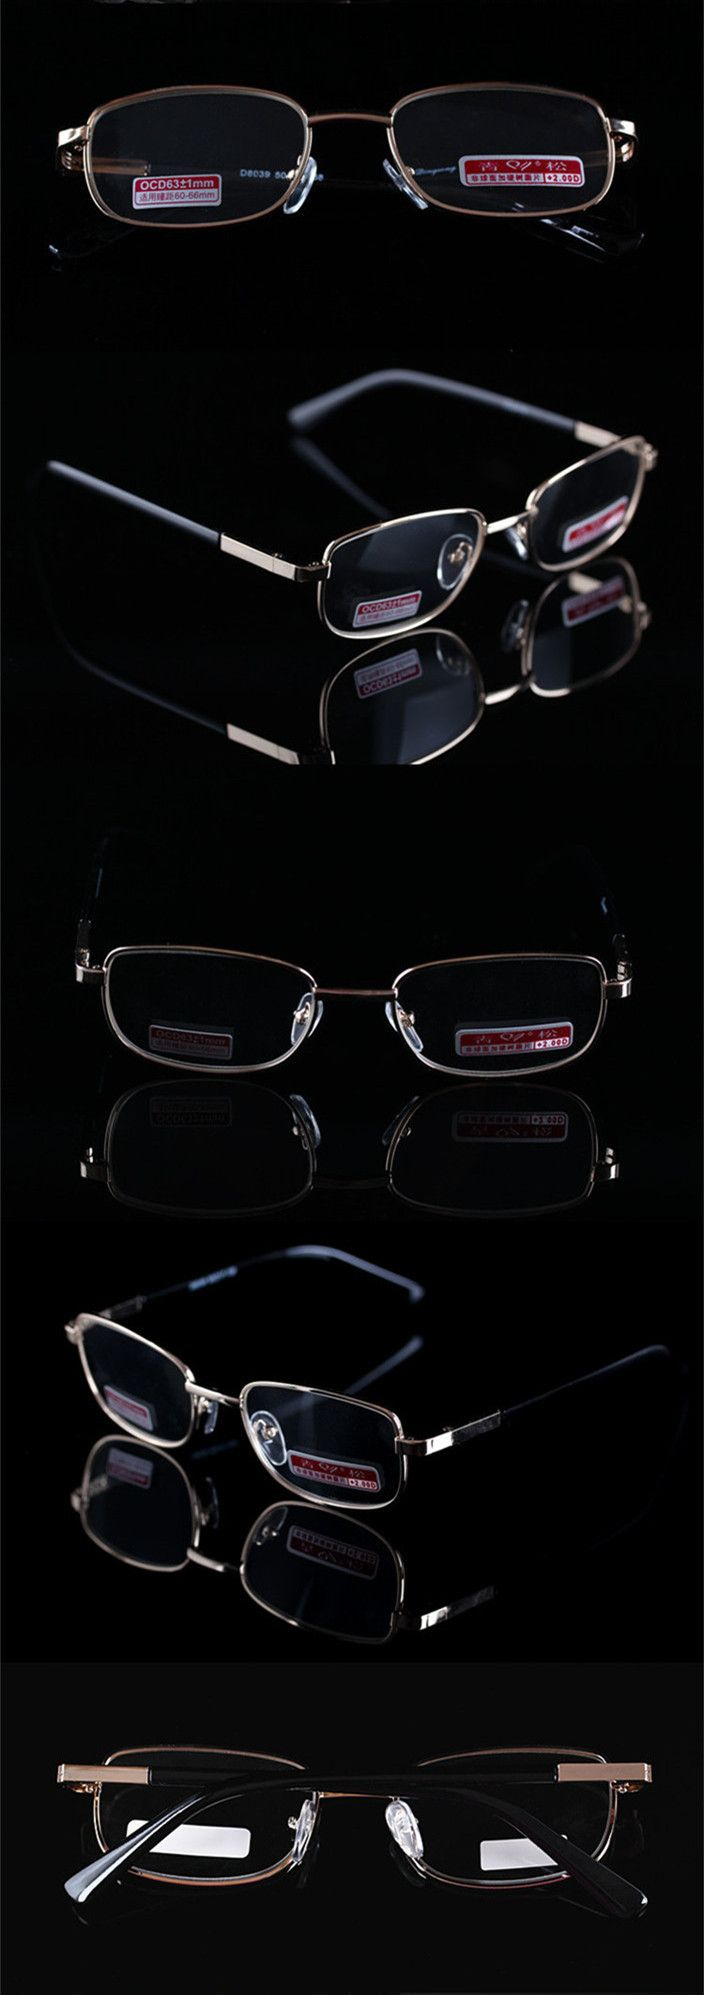 This is a reading glasses for the elderly, its quality is very good, the dioptre it can provide is below: +1.0,+1.5,+2.0,+2.5,+3.0,+3.5,+4.0. High Definition Exquisite Reading Glasses,Comfortable Aspheric Hard Resin Lens Lunettes De Lecture,G443 US $6.33 / piece